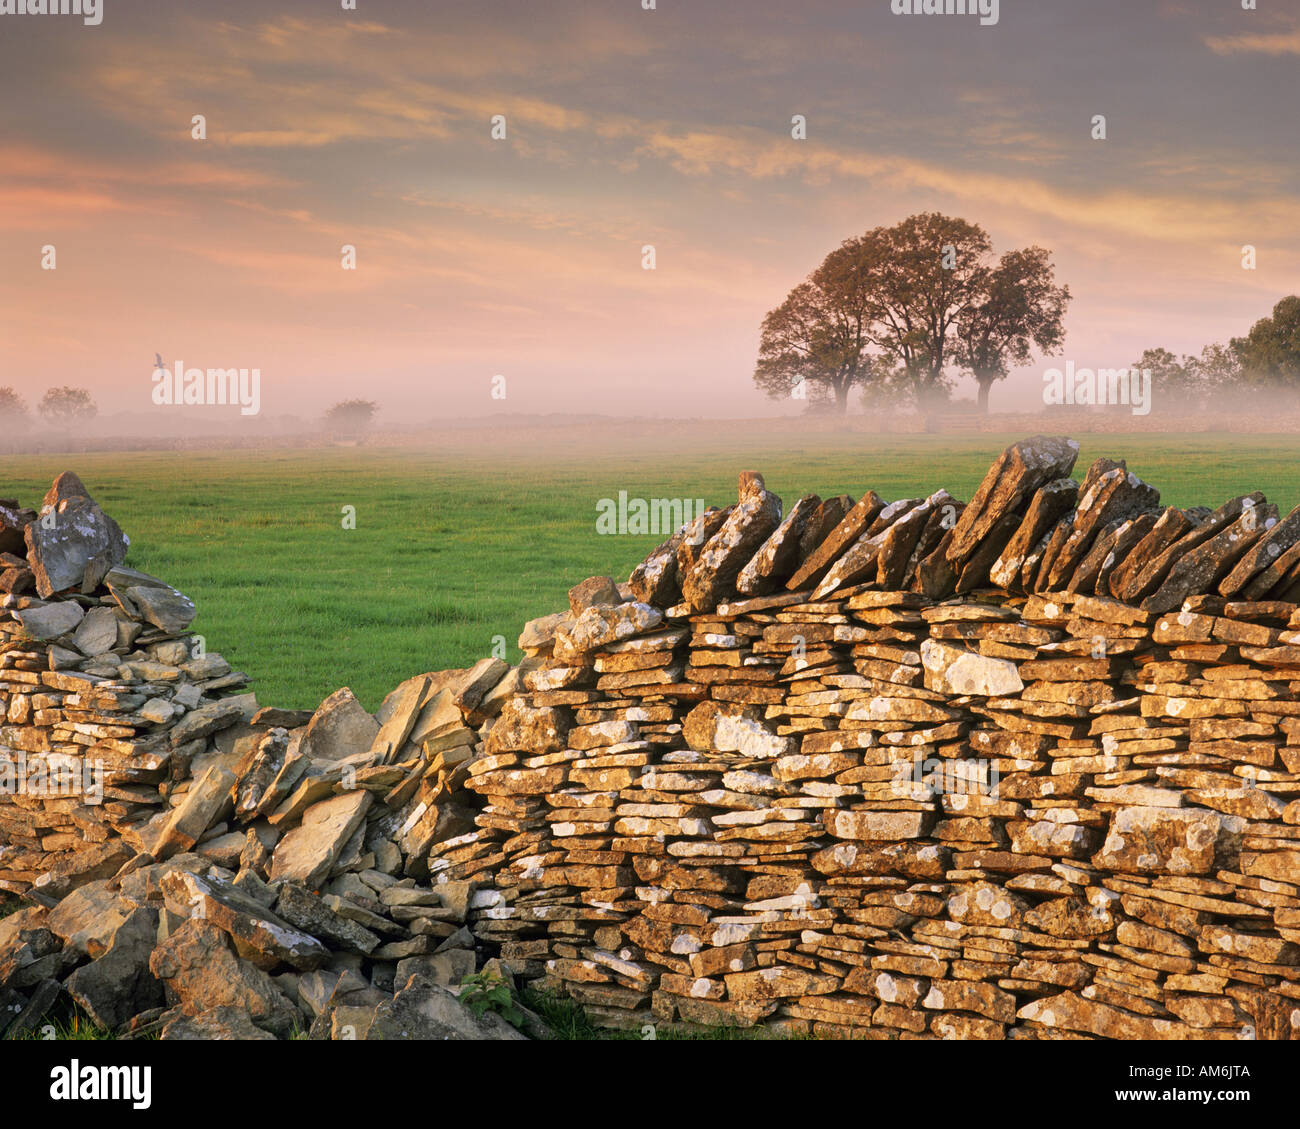 GB - GLOUCESTERSHIRE:  Typical Cotswold Scene - Stock Image